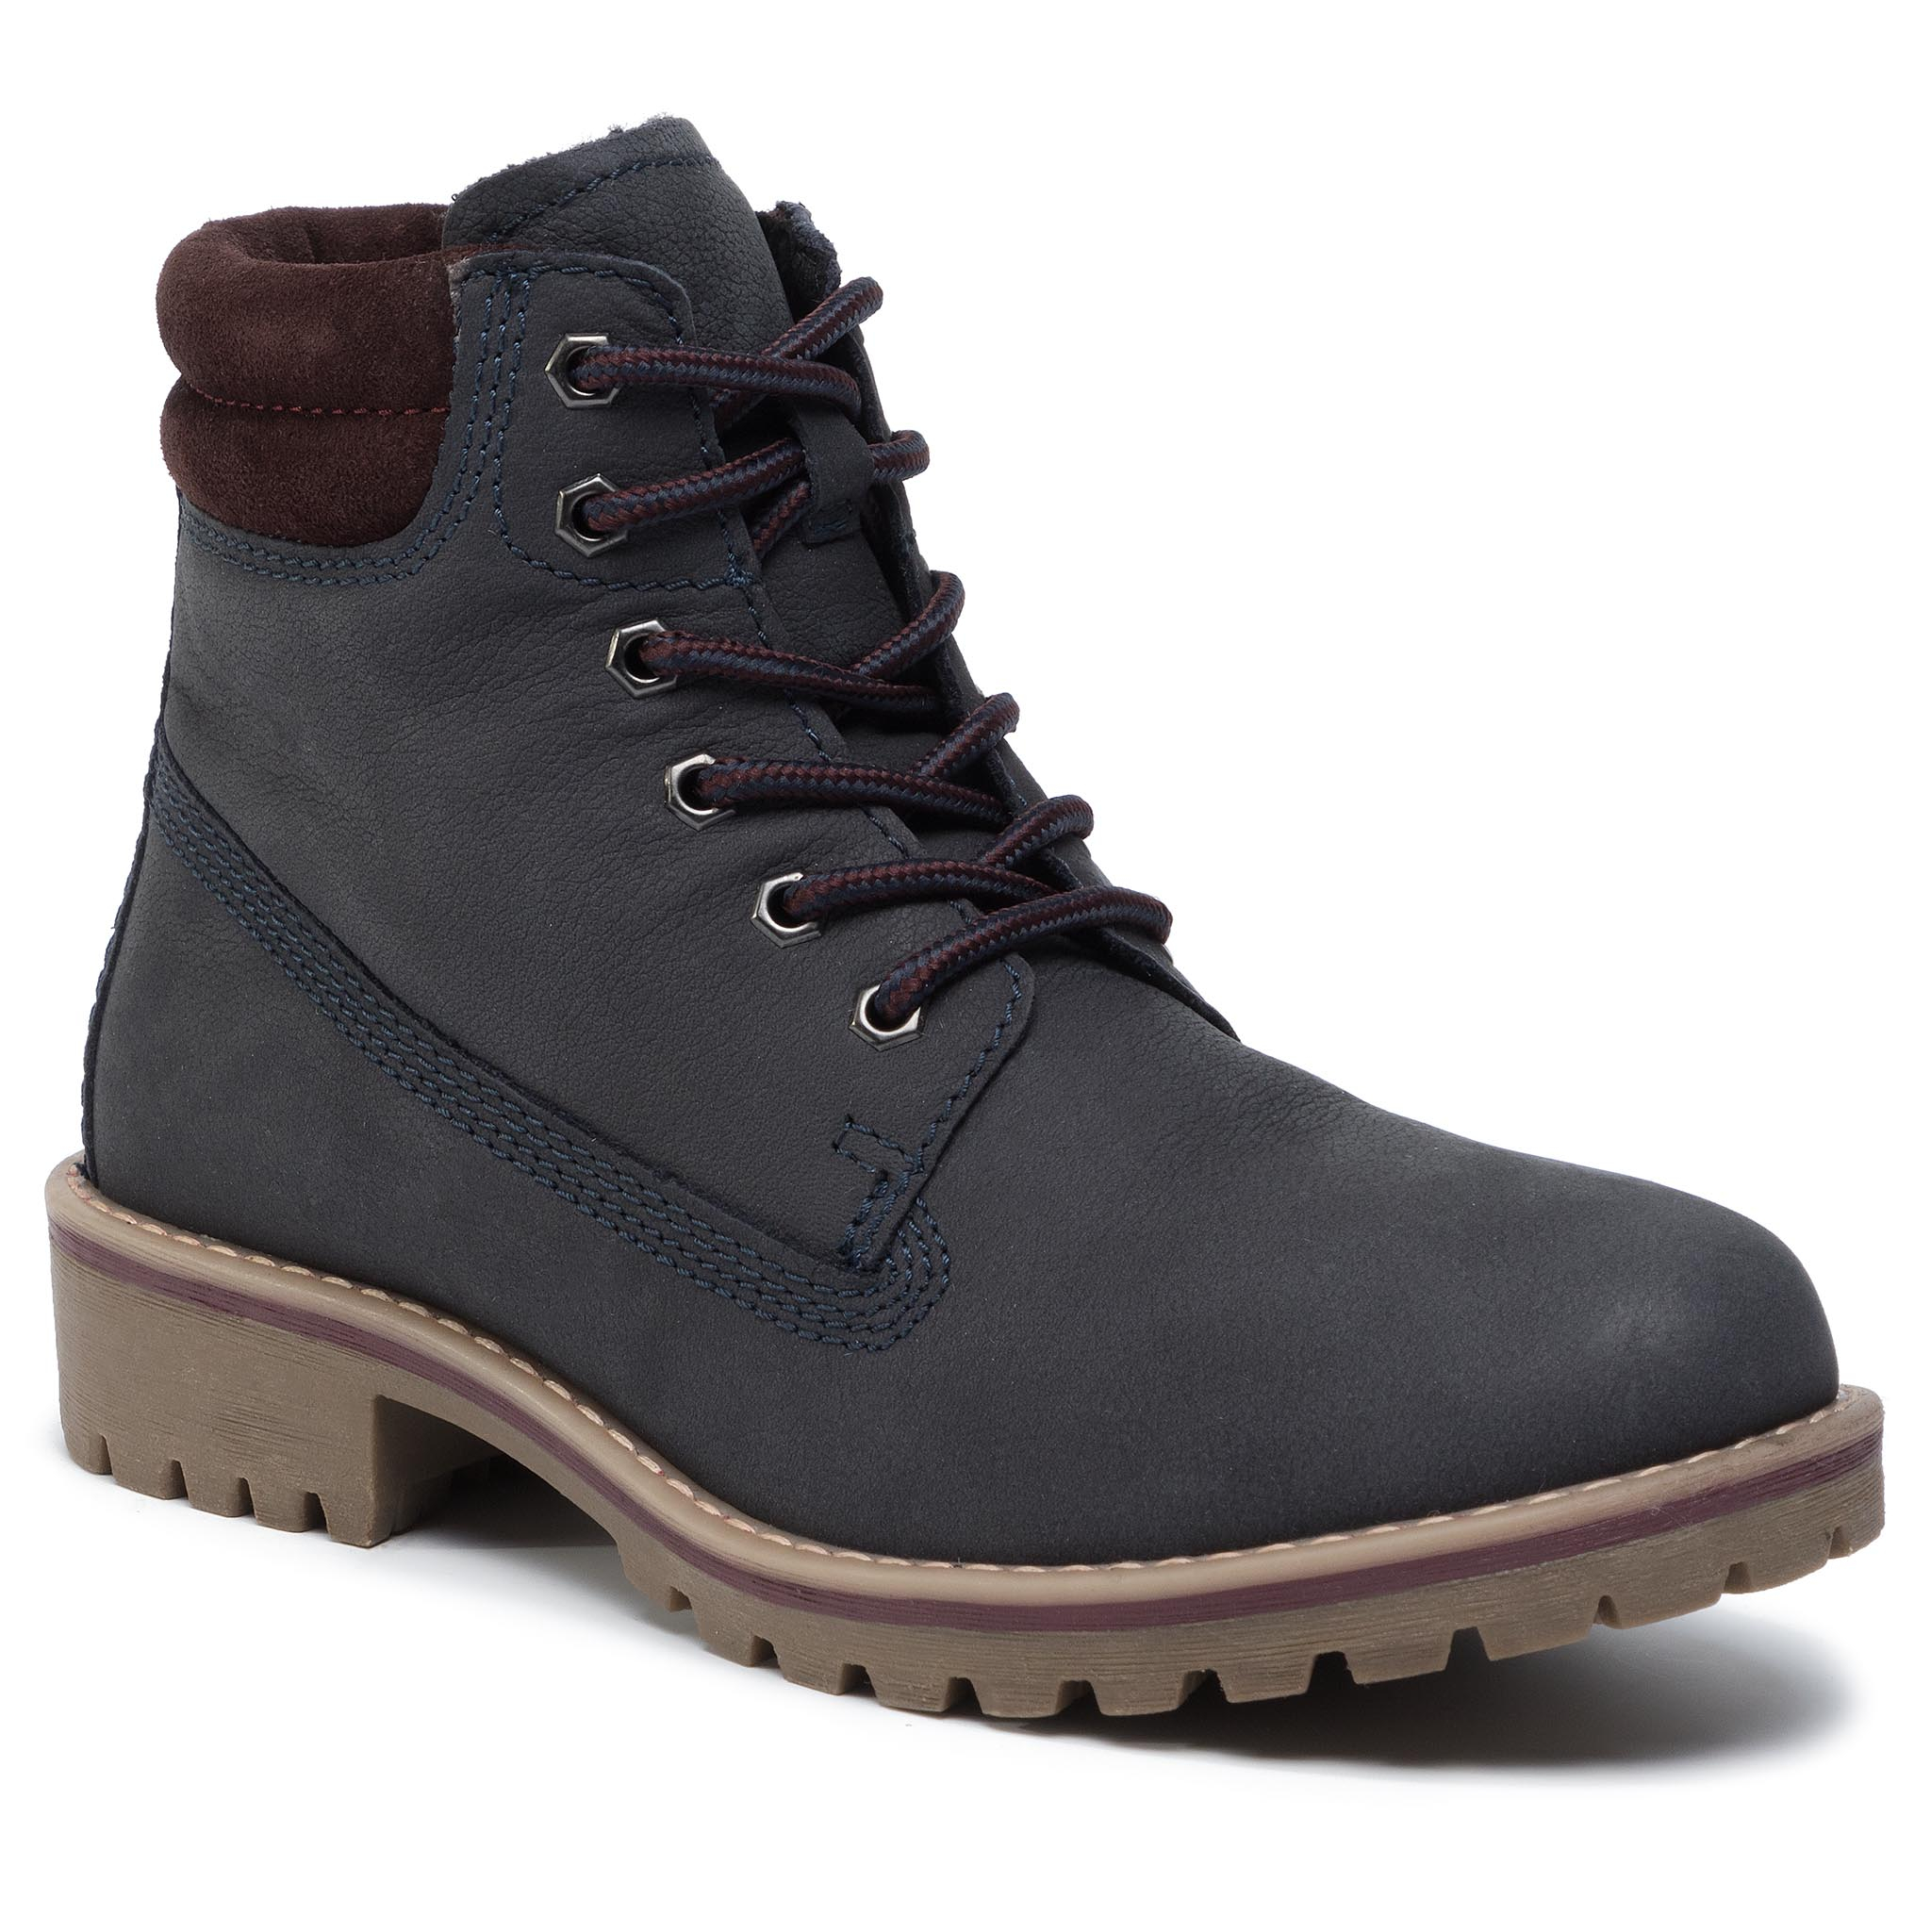 Trappers MARCO TOZZI - 2-26248-33 Navy/Bordeaux 849